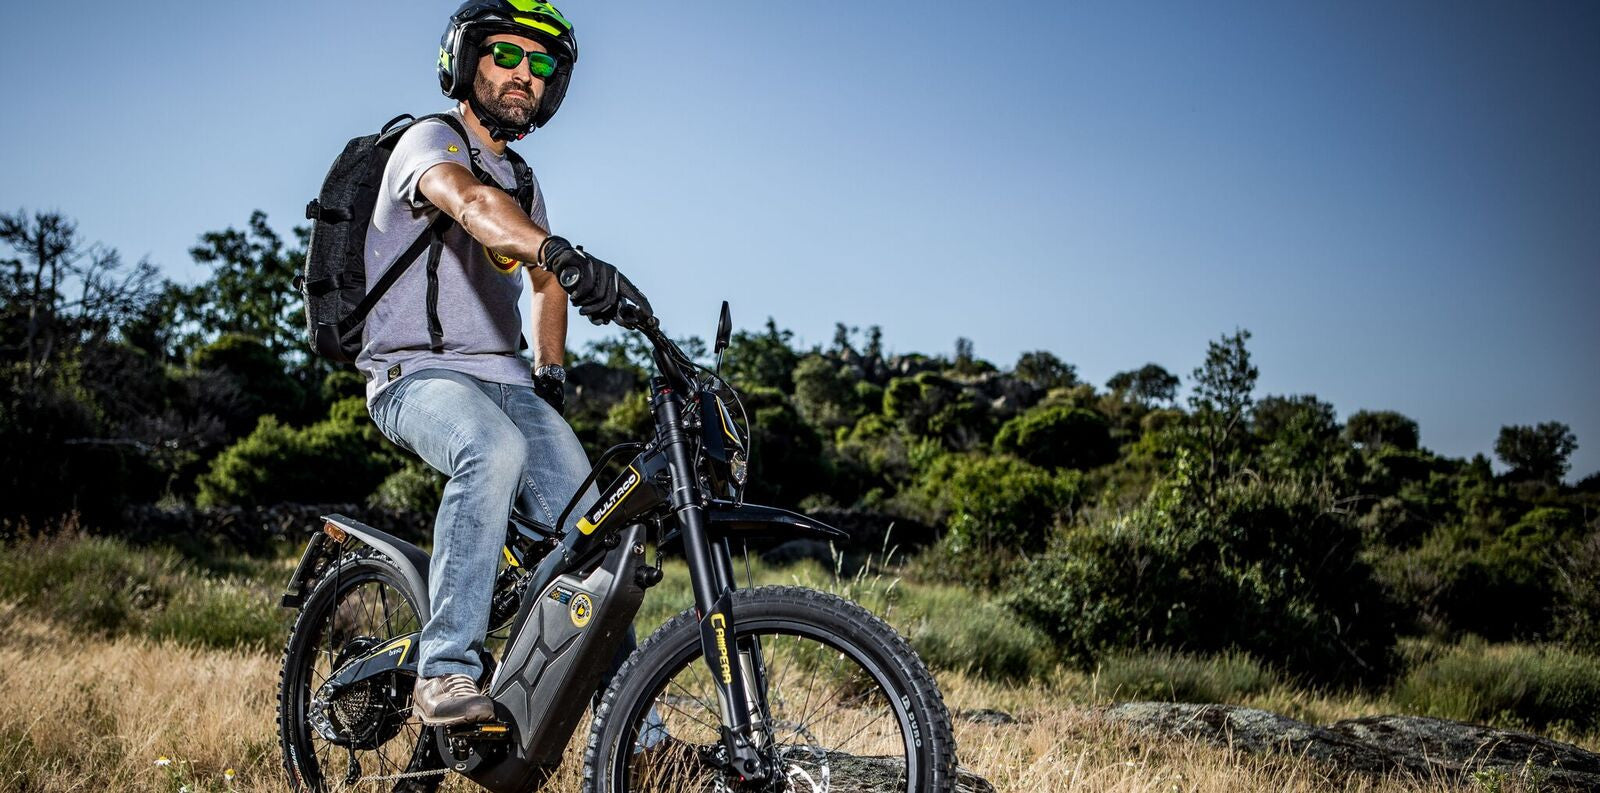 Bultaco Brinco C Restyle Day Time Shoot 1